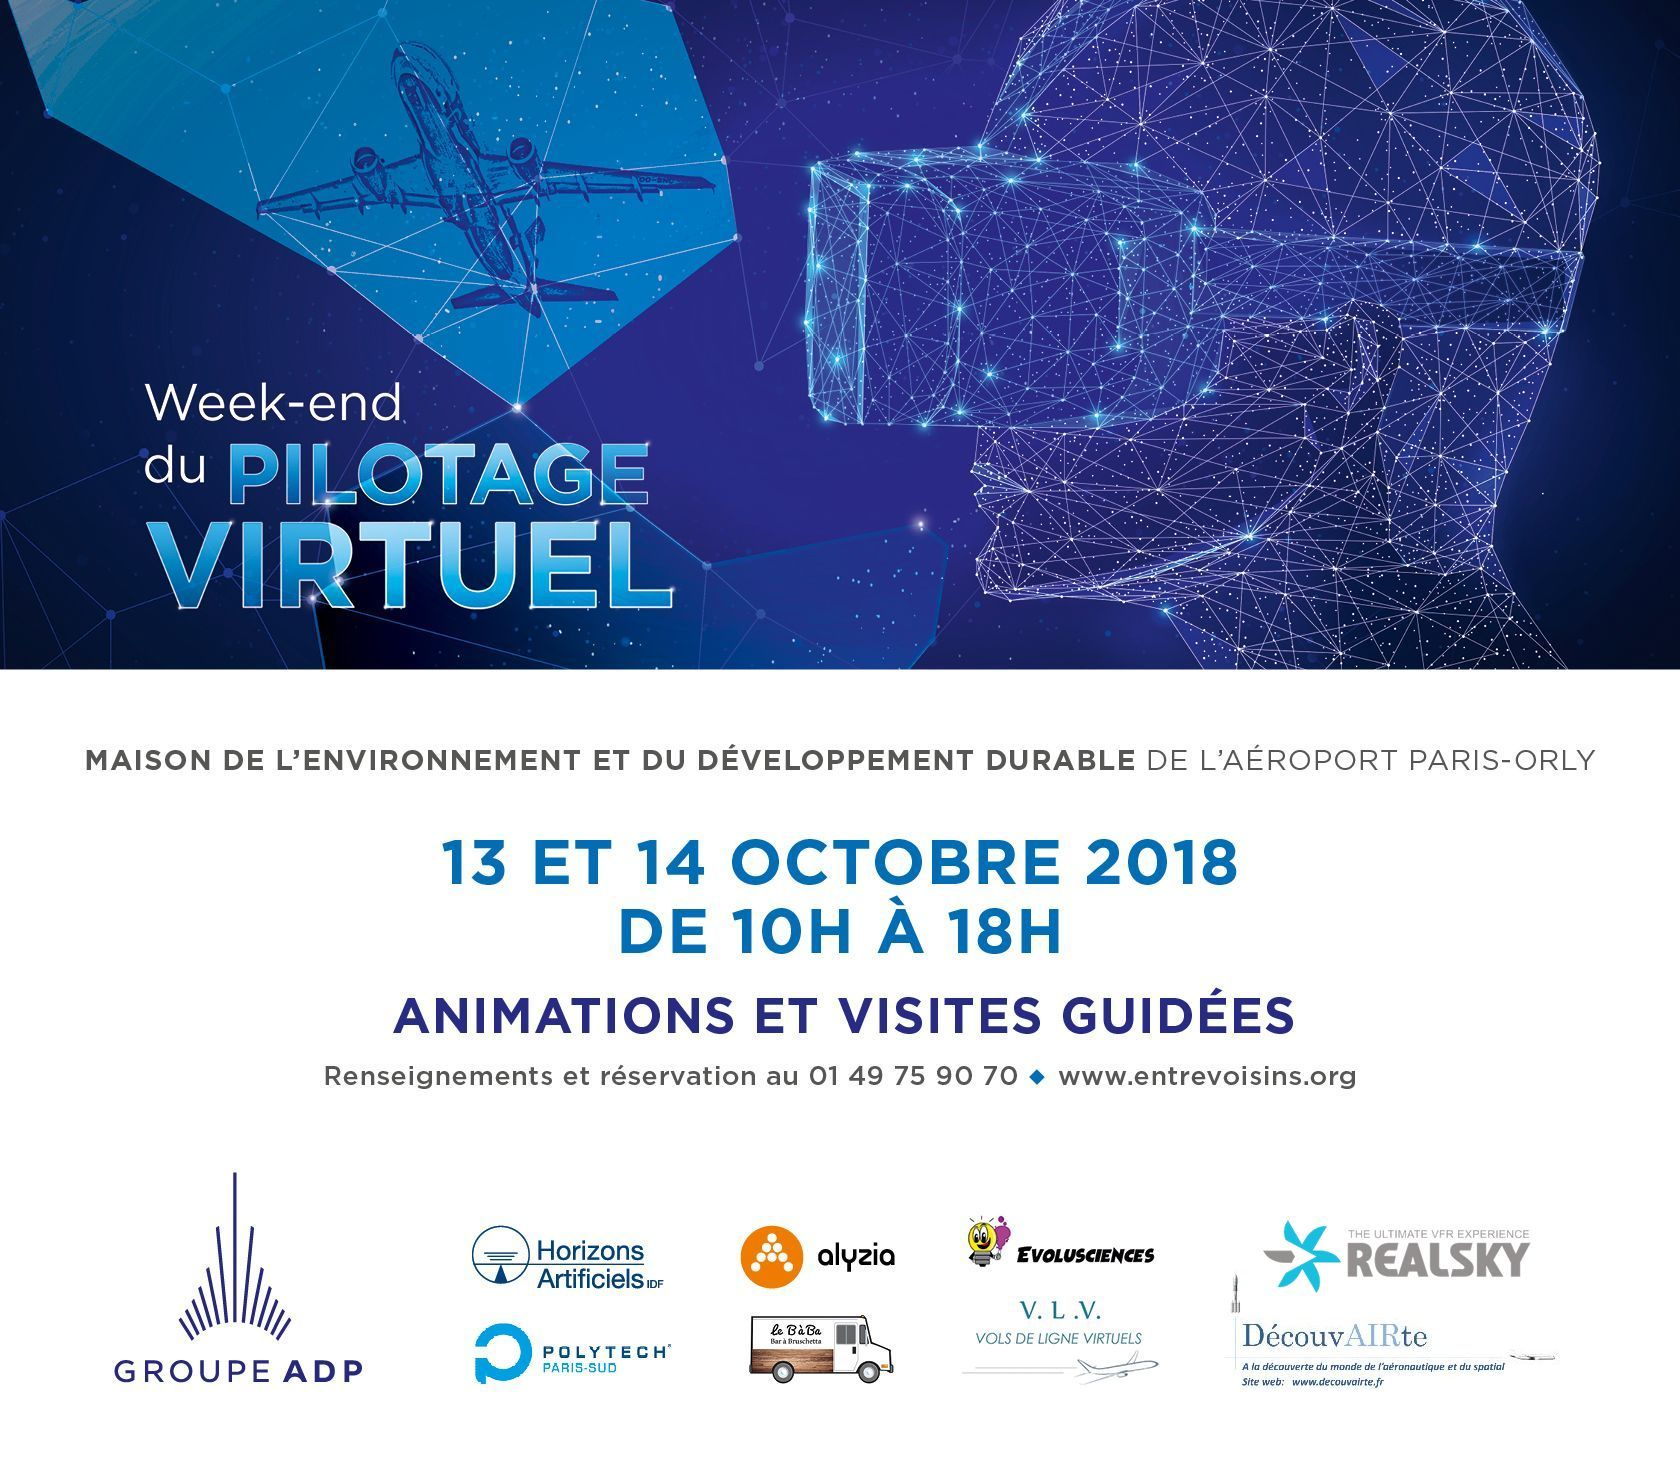 http://www.realsky.fr/e107_base/e107_images/newspost_images/Affiche_Weekend_Pilotage%20Virtuel_V2.jpg